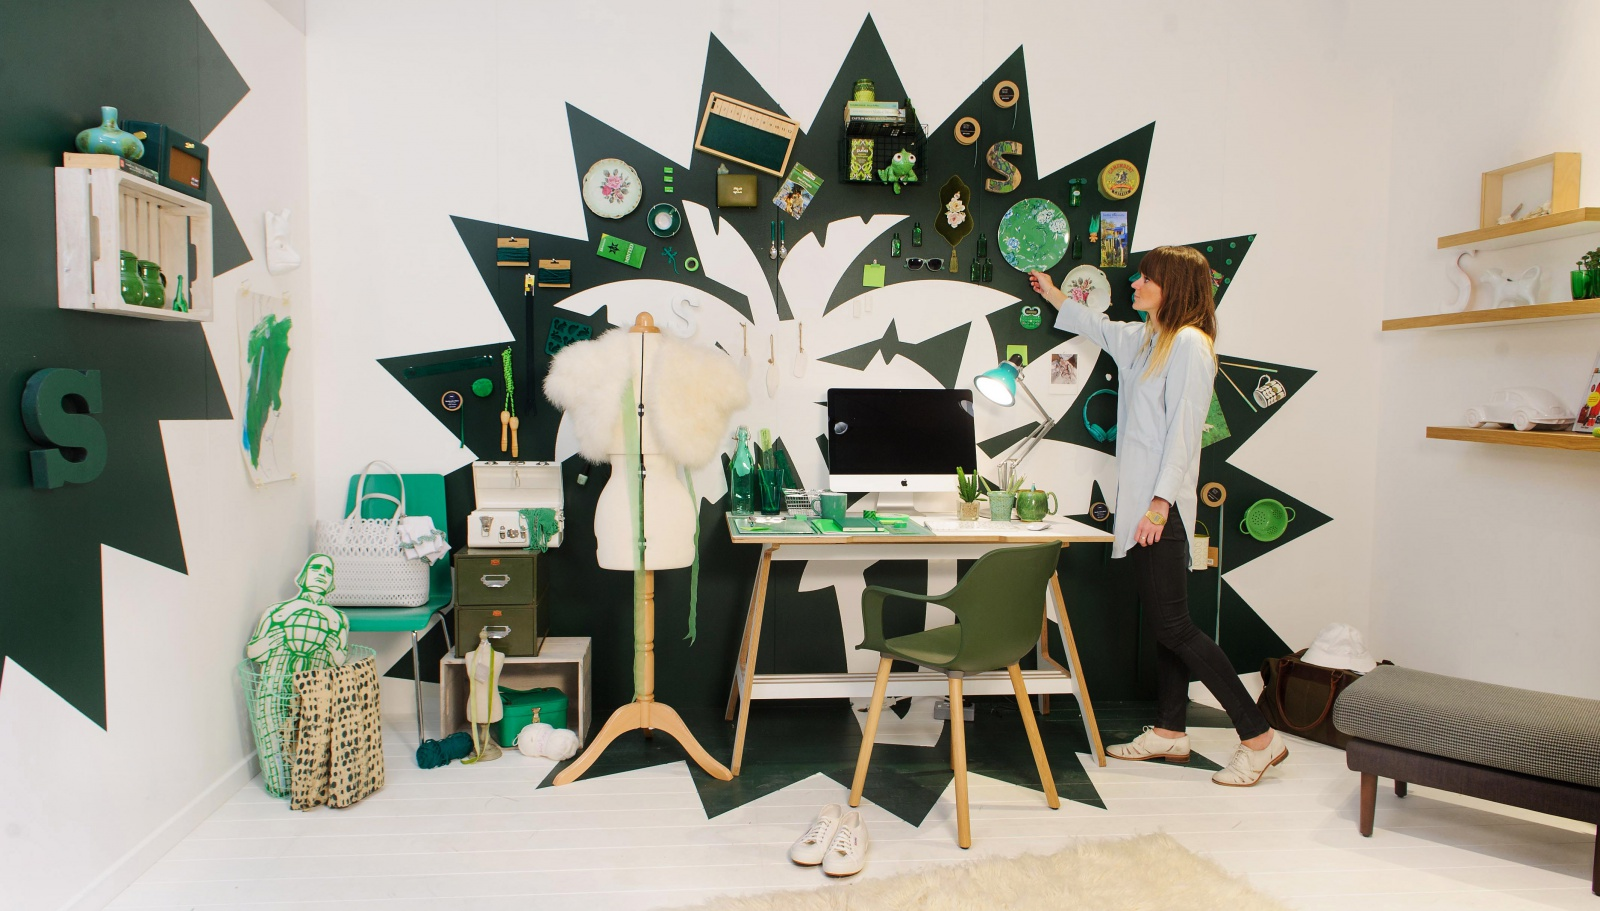 John lewis launches interactive installation in home for Home design john lewis